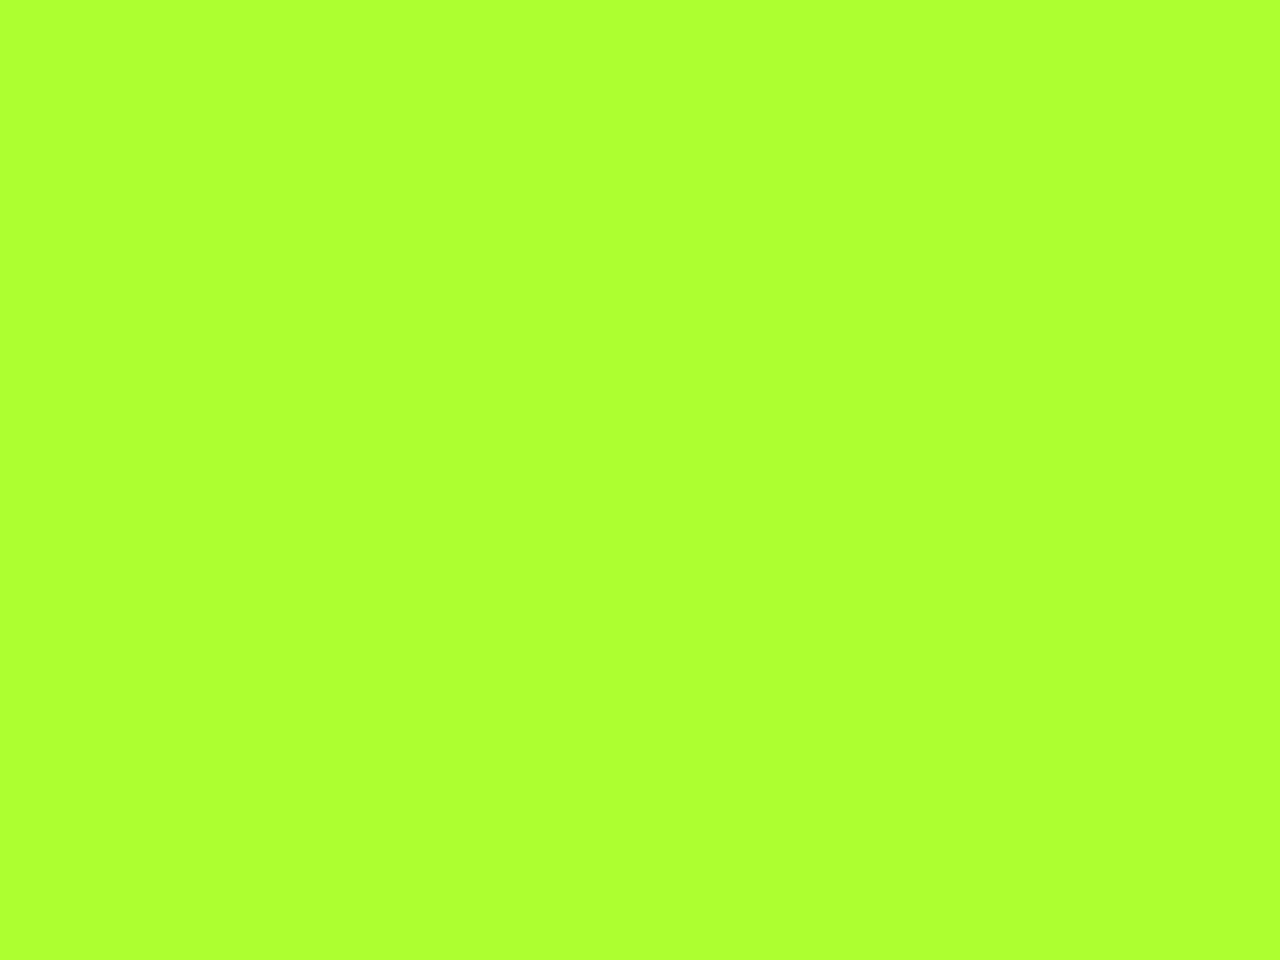 1280x960 Green-yellow Solid Color Background